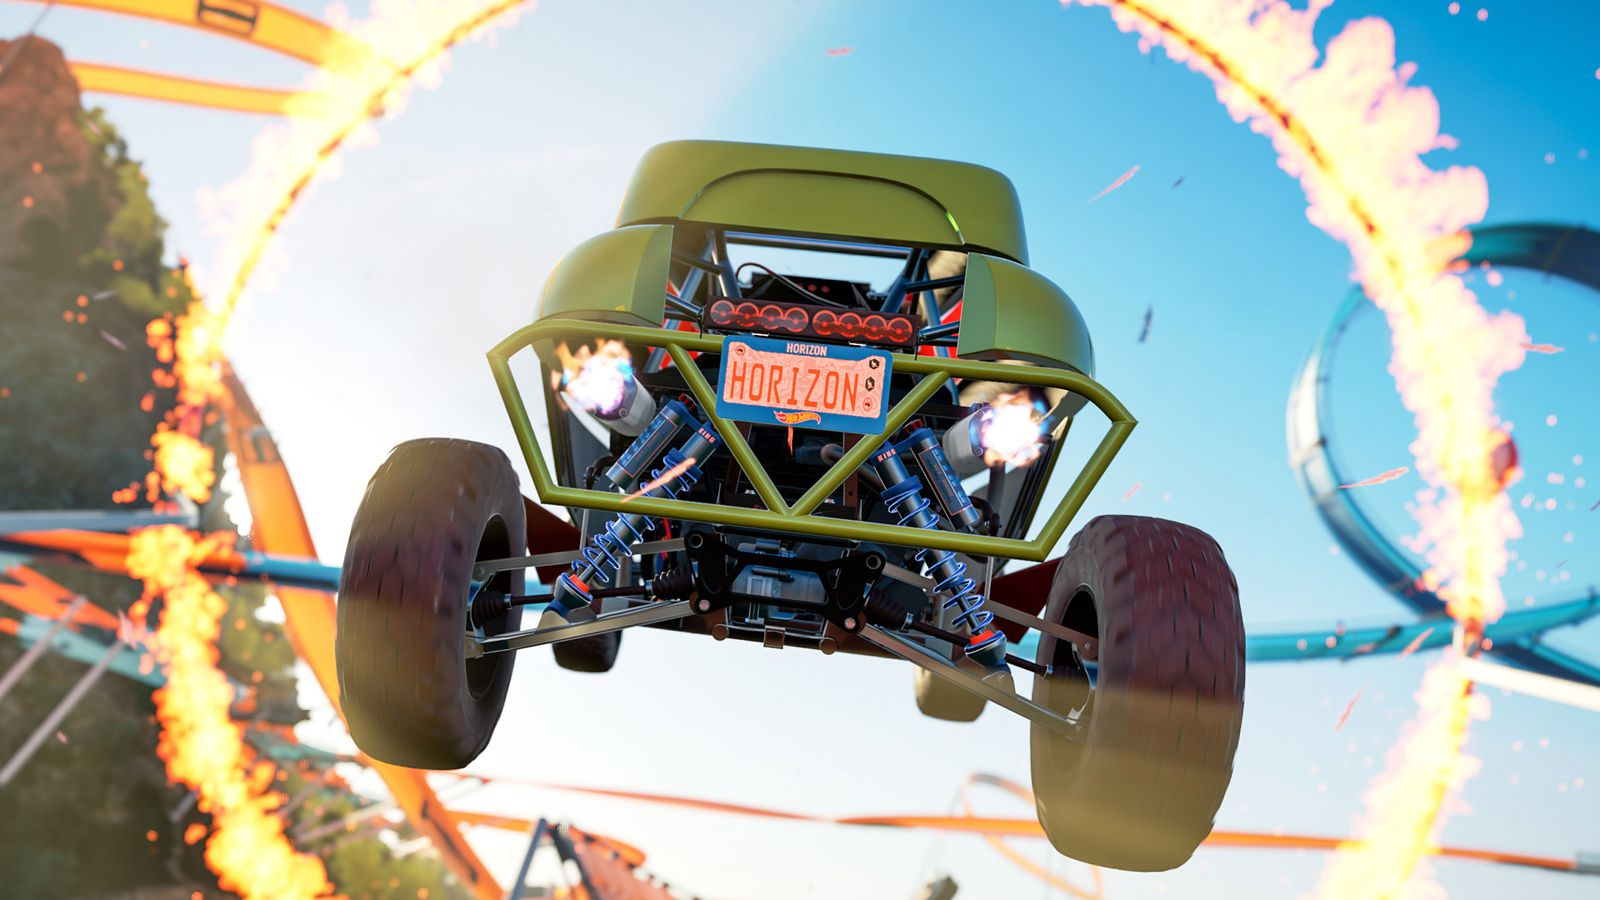 Forza Horizon 3's getting a cool Hot Wheels expansion